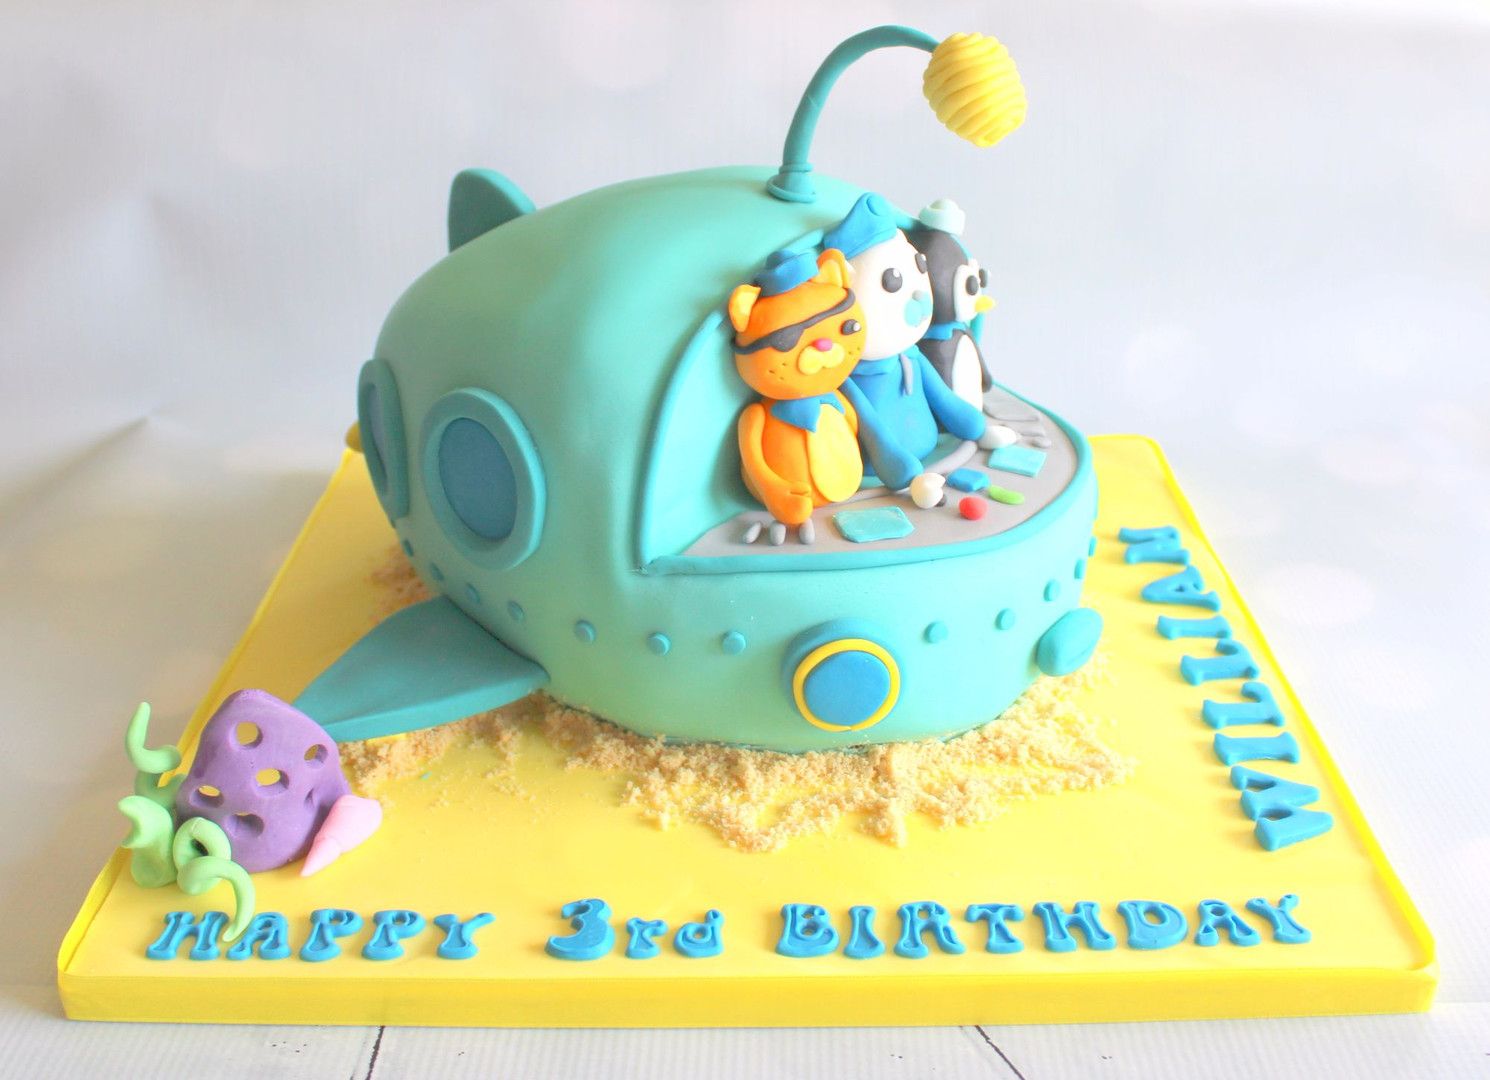 3D Octonauts ship cake with figures